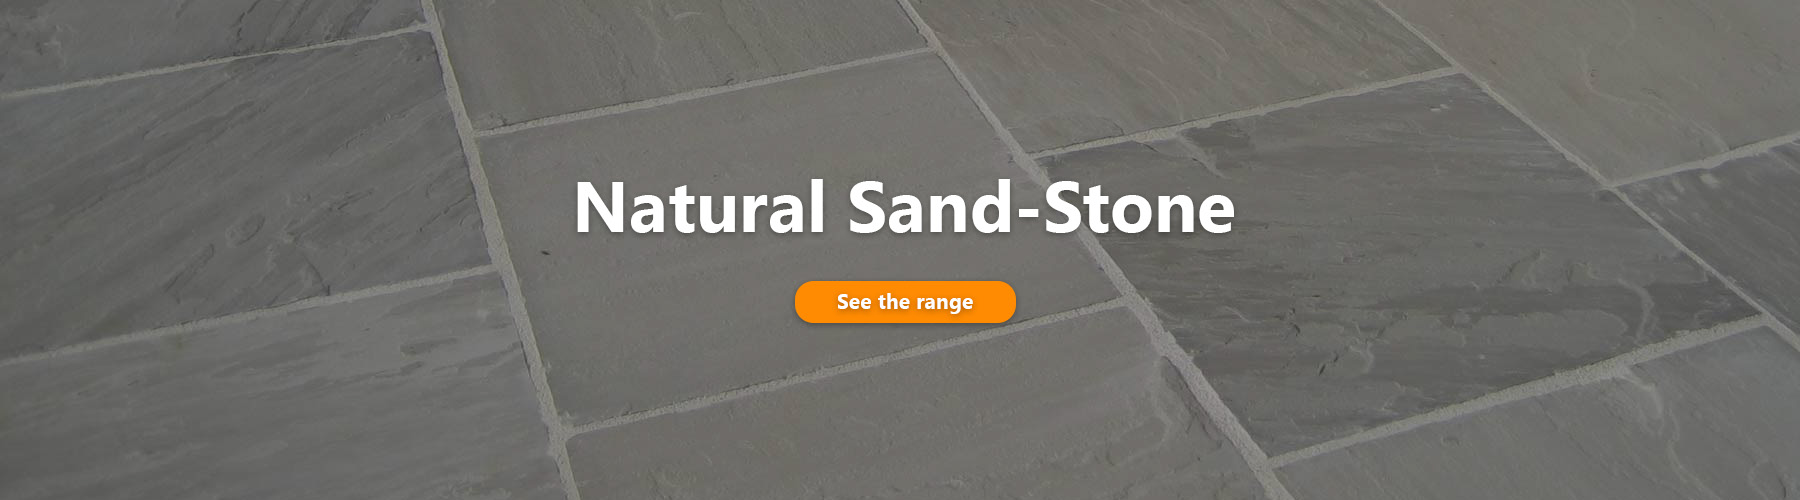 Natural Sand-Stone